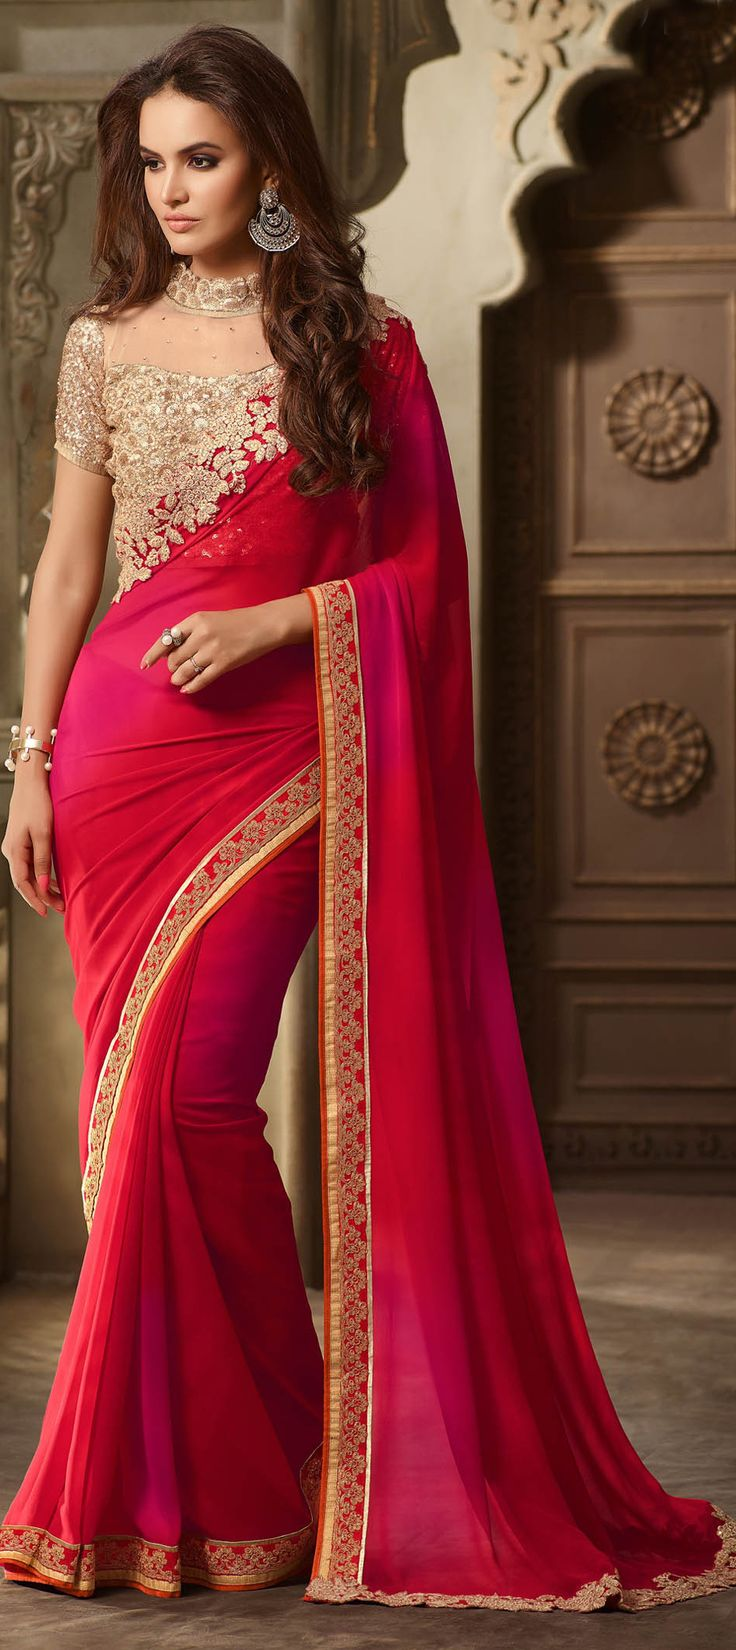 709849: Pink and Majenta color family Embroidered Sarees, Party Wear Sarees with matching unstitched blouse.